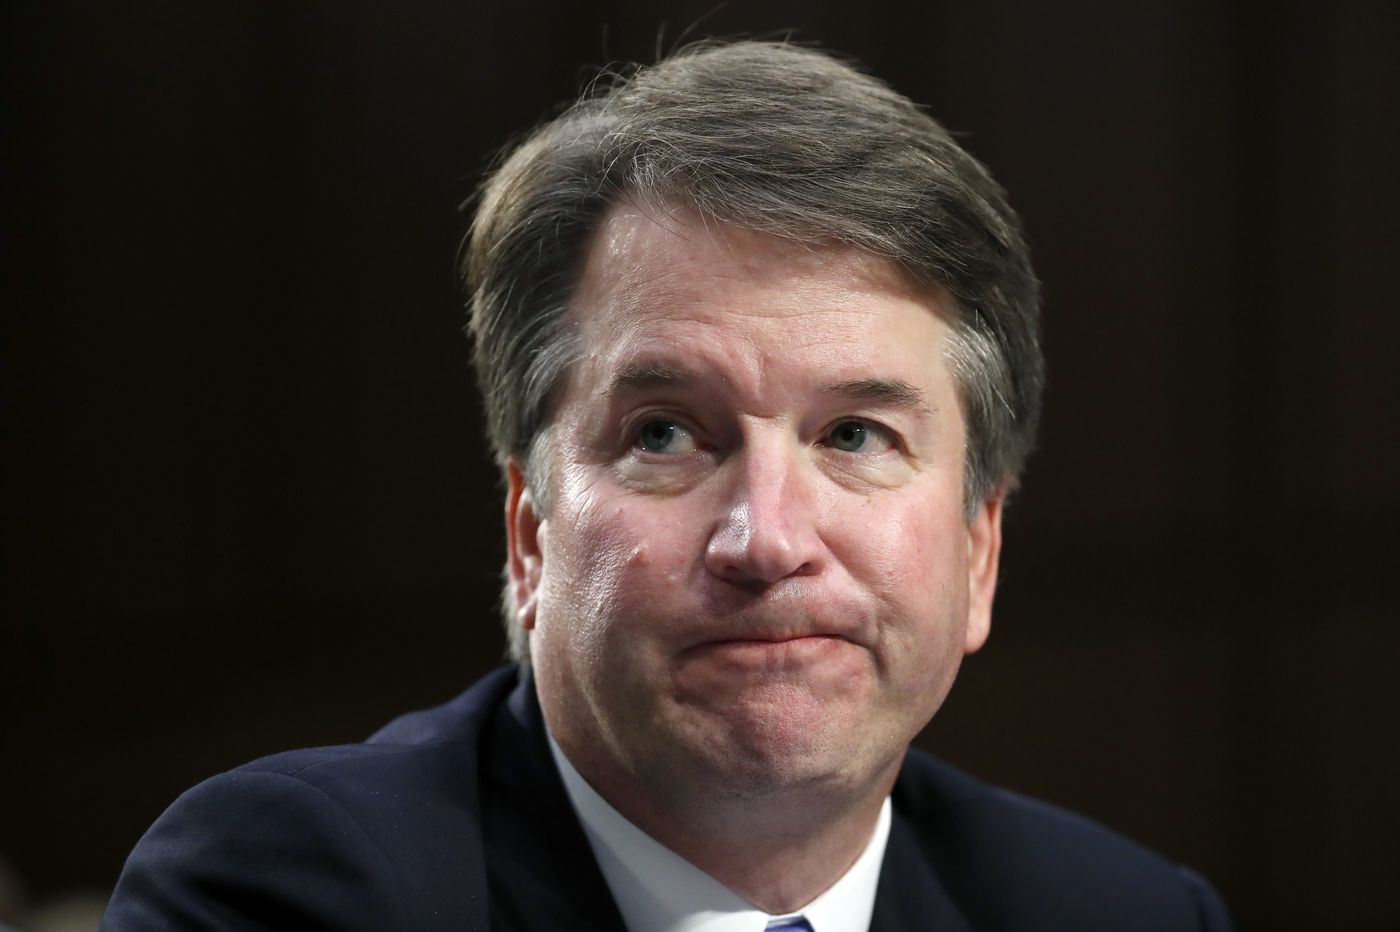 We already know the truth that matters: America can do a lot better than Brett Kavanaugh | Will Bunch